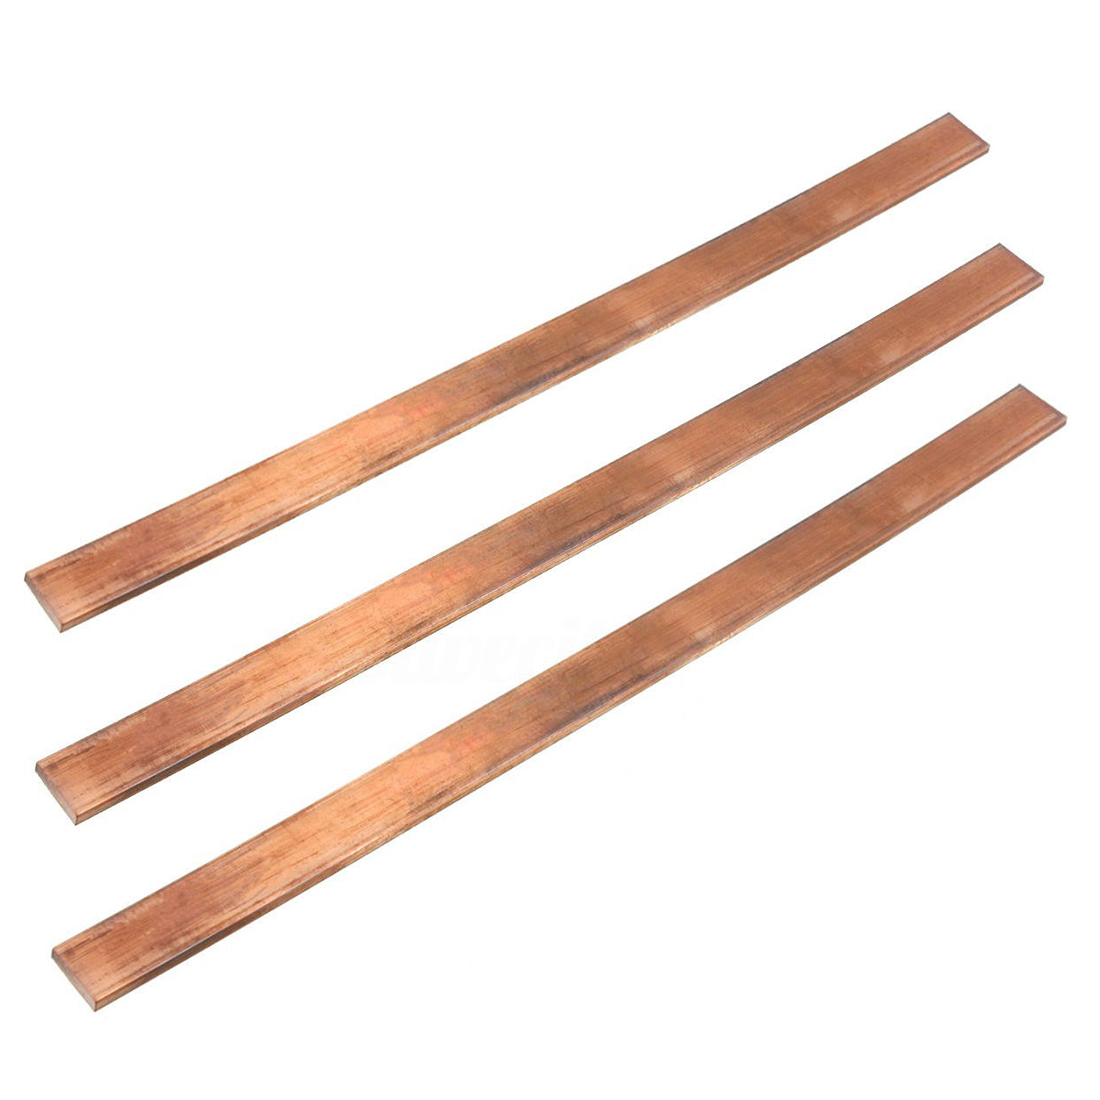 99.6% T2 Purple Copper Cu Flat Bar Plate 3mm x 15mm x 250mm Metal Strip99.6% T2 Purple Copper Cu Flat Bar Plate 3mm x 15mm x 250mm Metal Strip